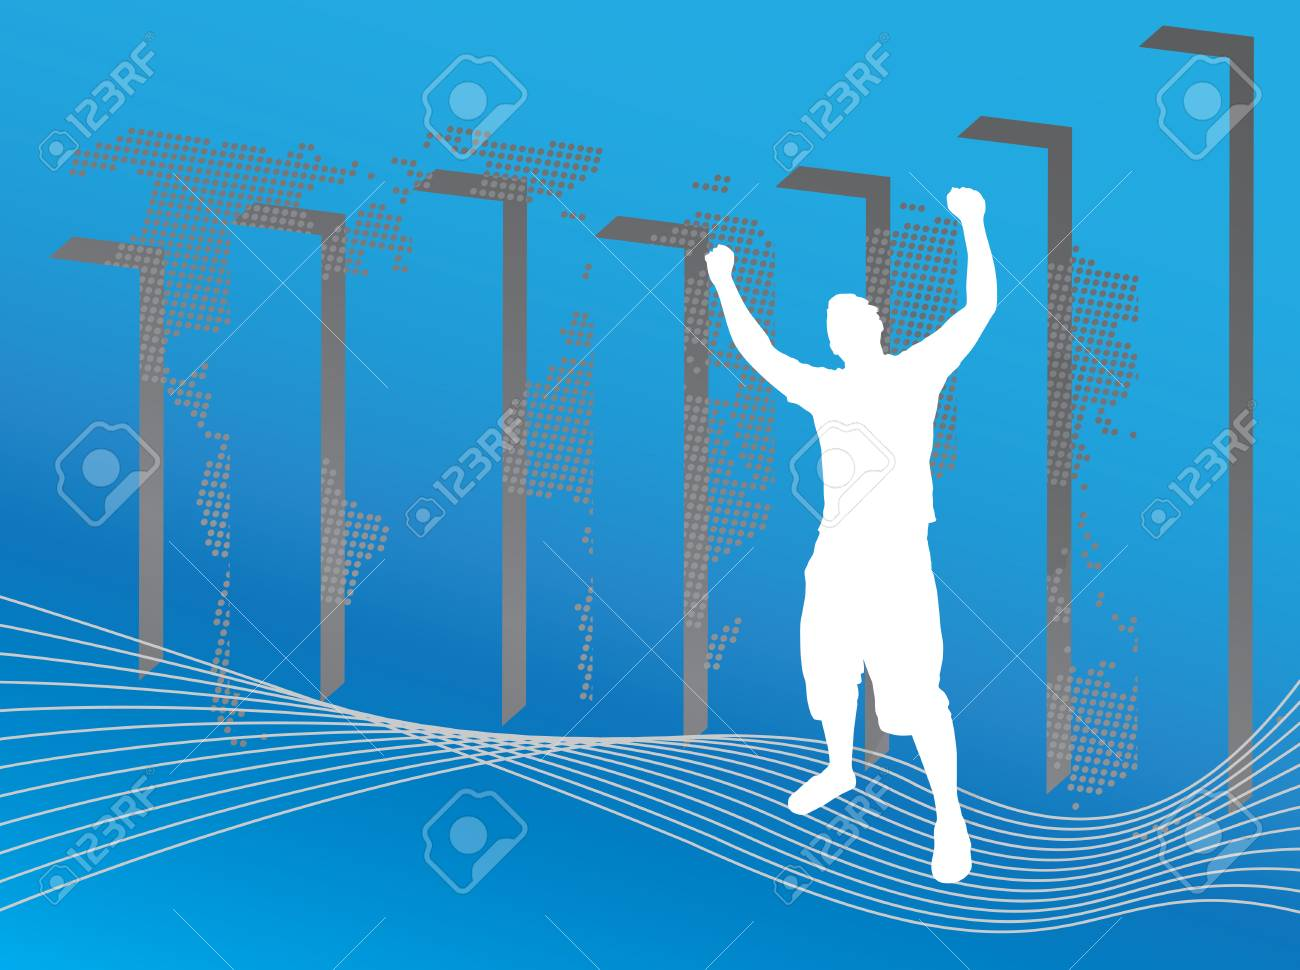 A world business illustration with a profit chart and a silhouette of a man posing victoriously.  This vector image is fully customizable. Stock Vector - 3594297